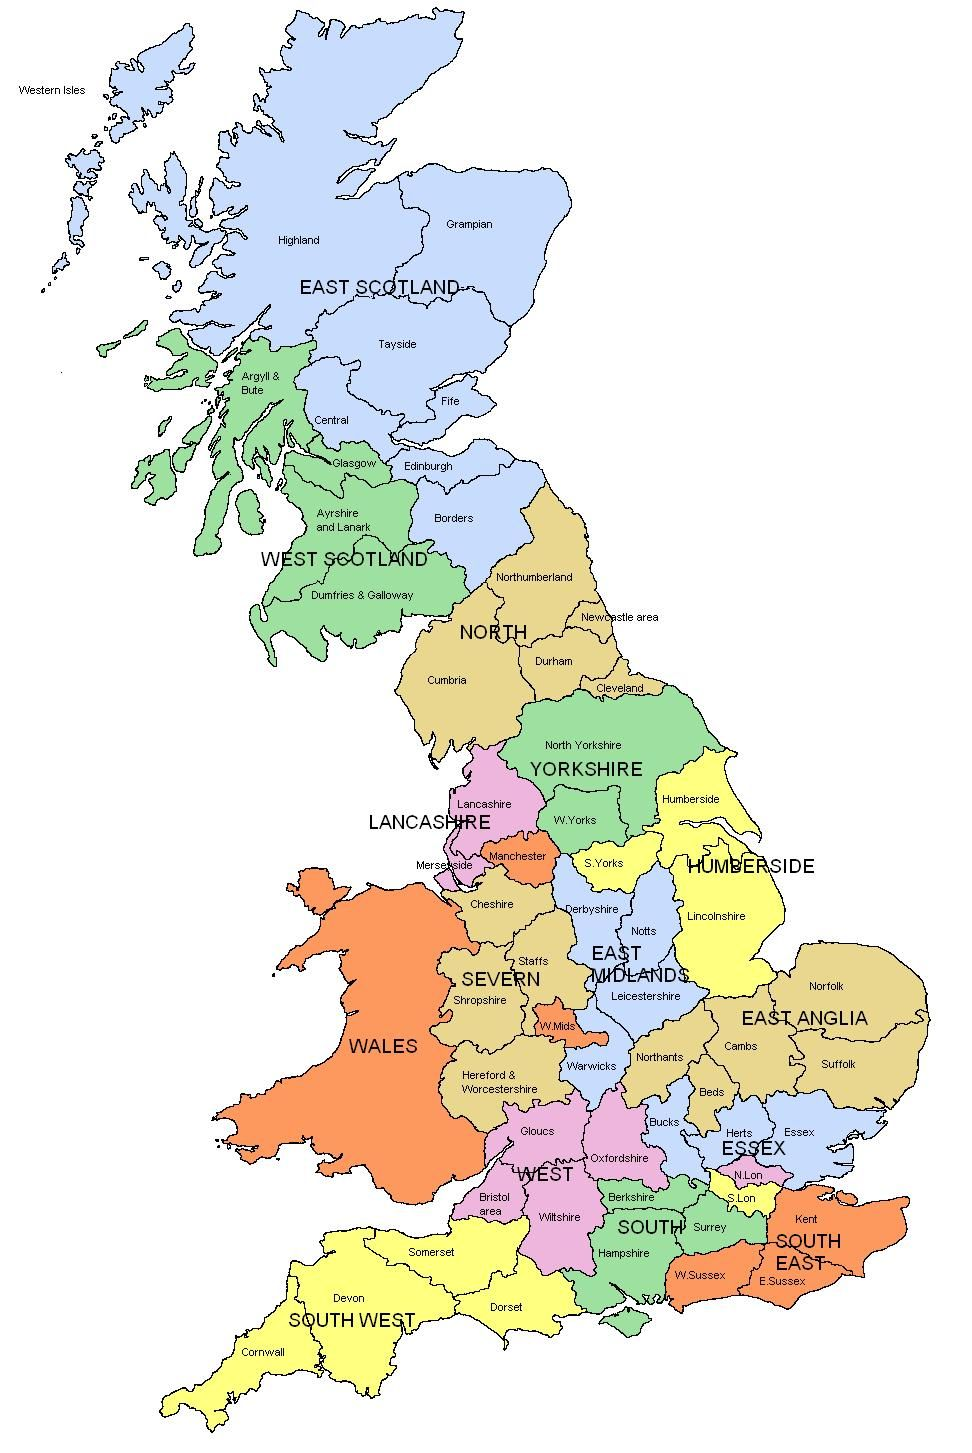 England On Map Of World.Map Of Regions And Counties Of England Wales Scotland I Know Is